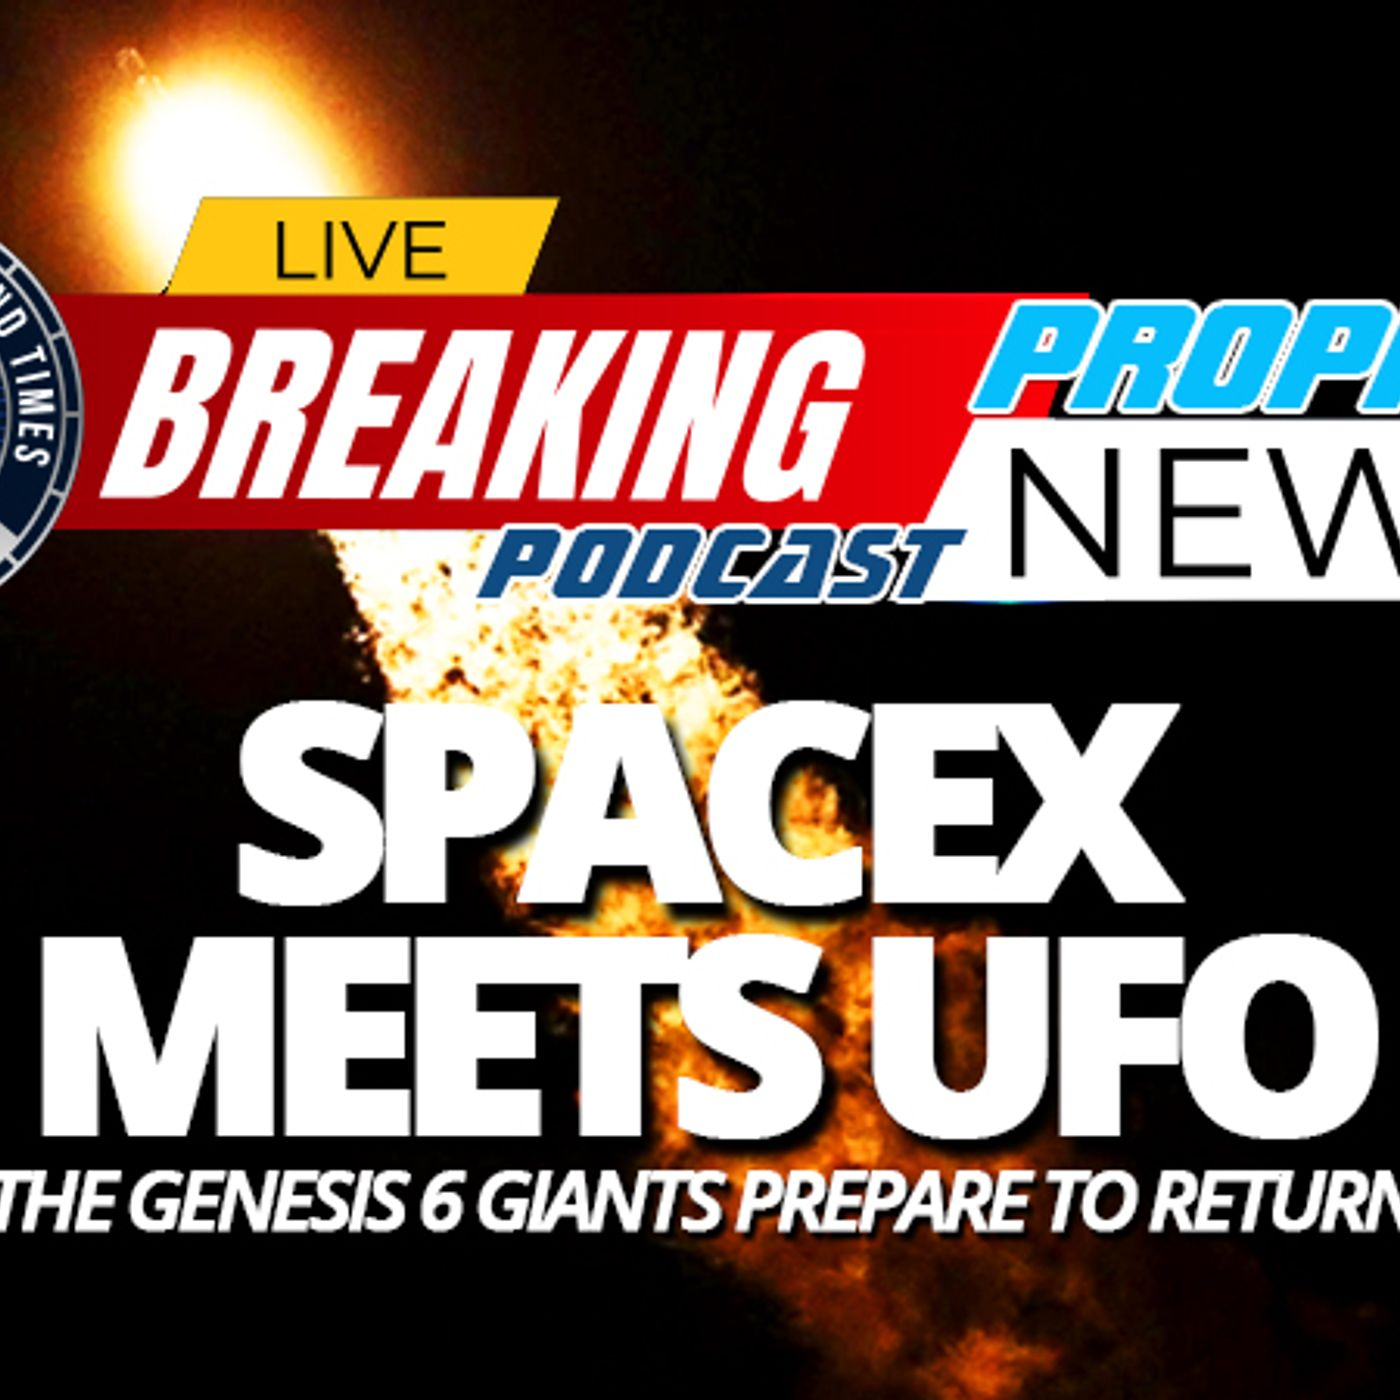 NTEB PROPHECY NEWS PODCAST: Elon Musk's SpaceX Dragon Falcon 9 Rocket Reaches Outer Space Only To Be Greeted By UFO, Says NASA